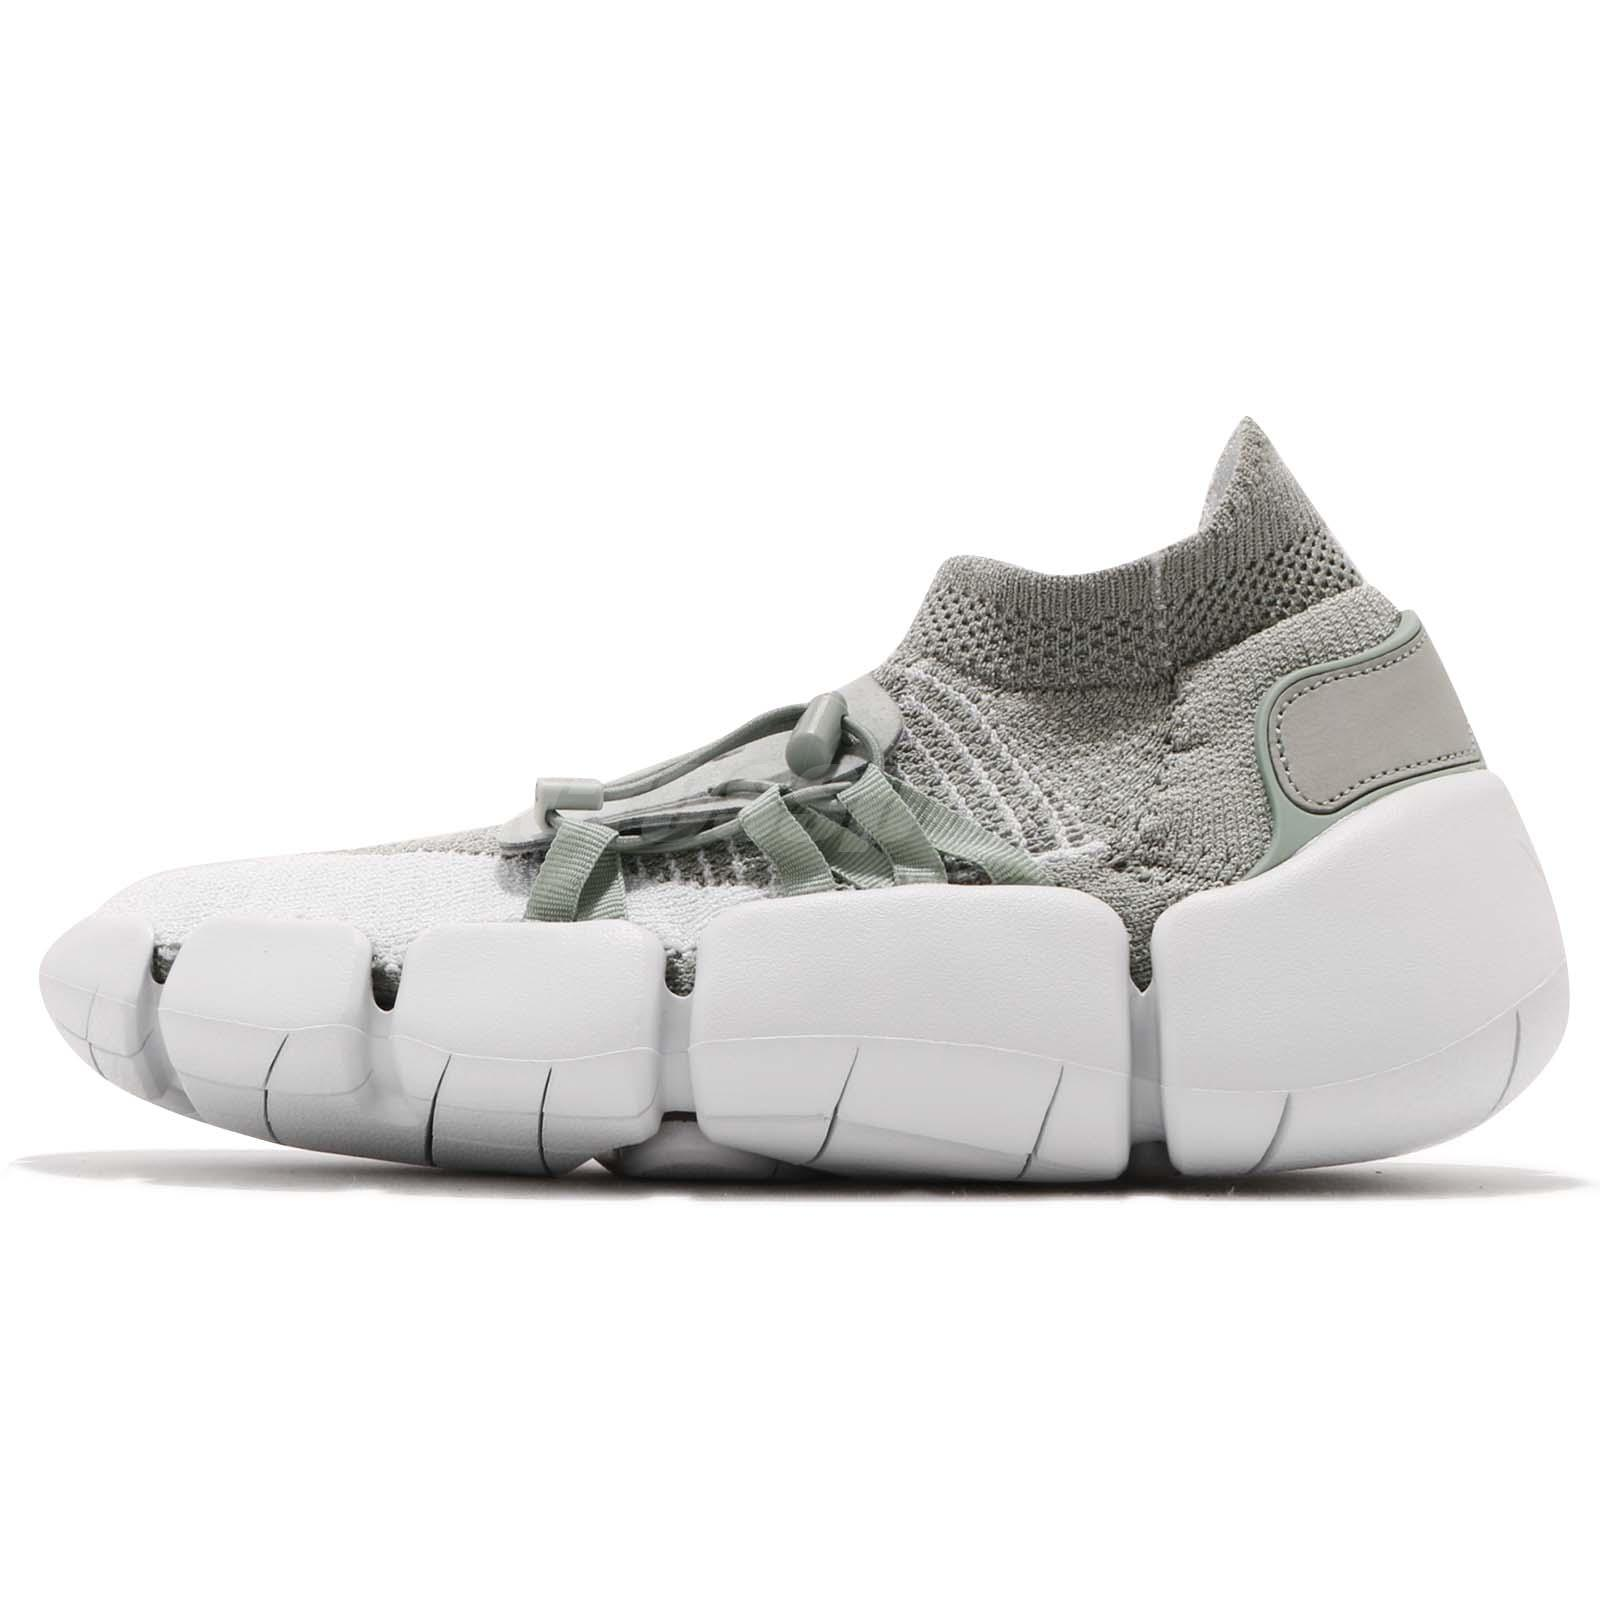 cheap for discount 2b3d8 3e7bc Nike Footscape Flyknit DM Grey Men Running Lifestyle Slip On Shoes  AO2611-002